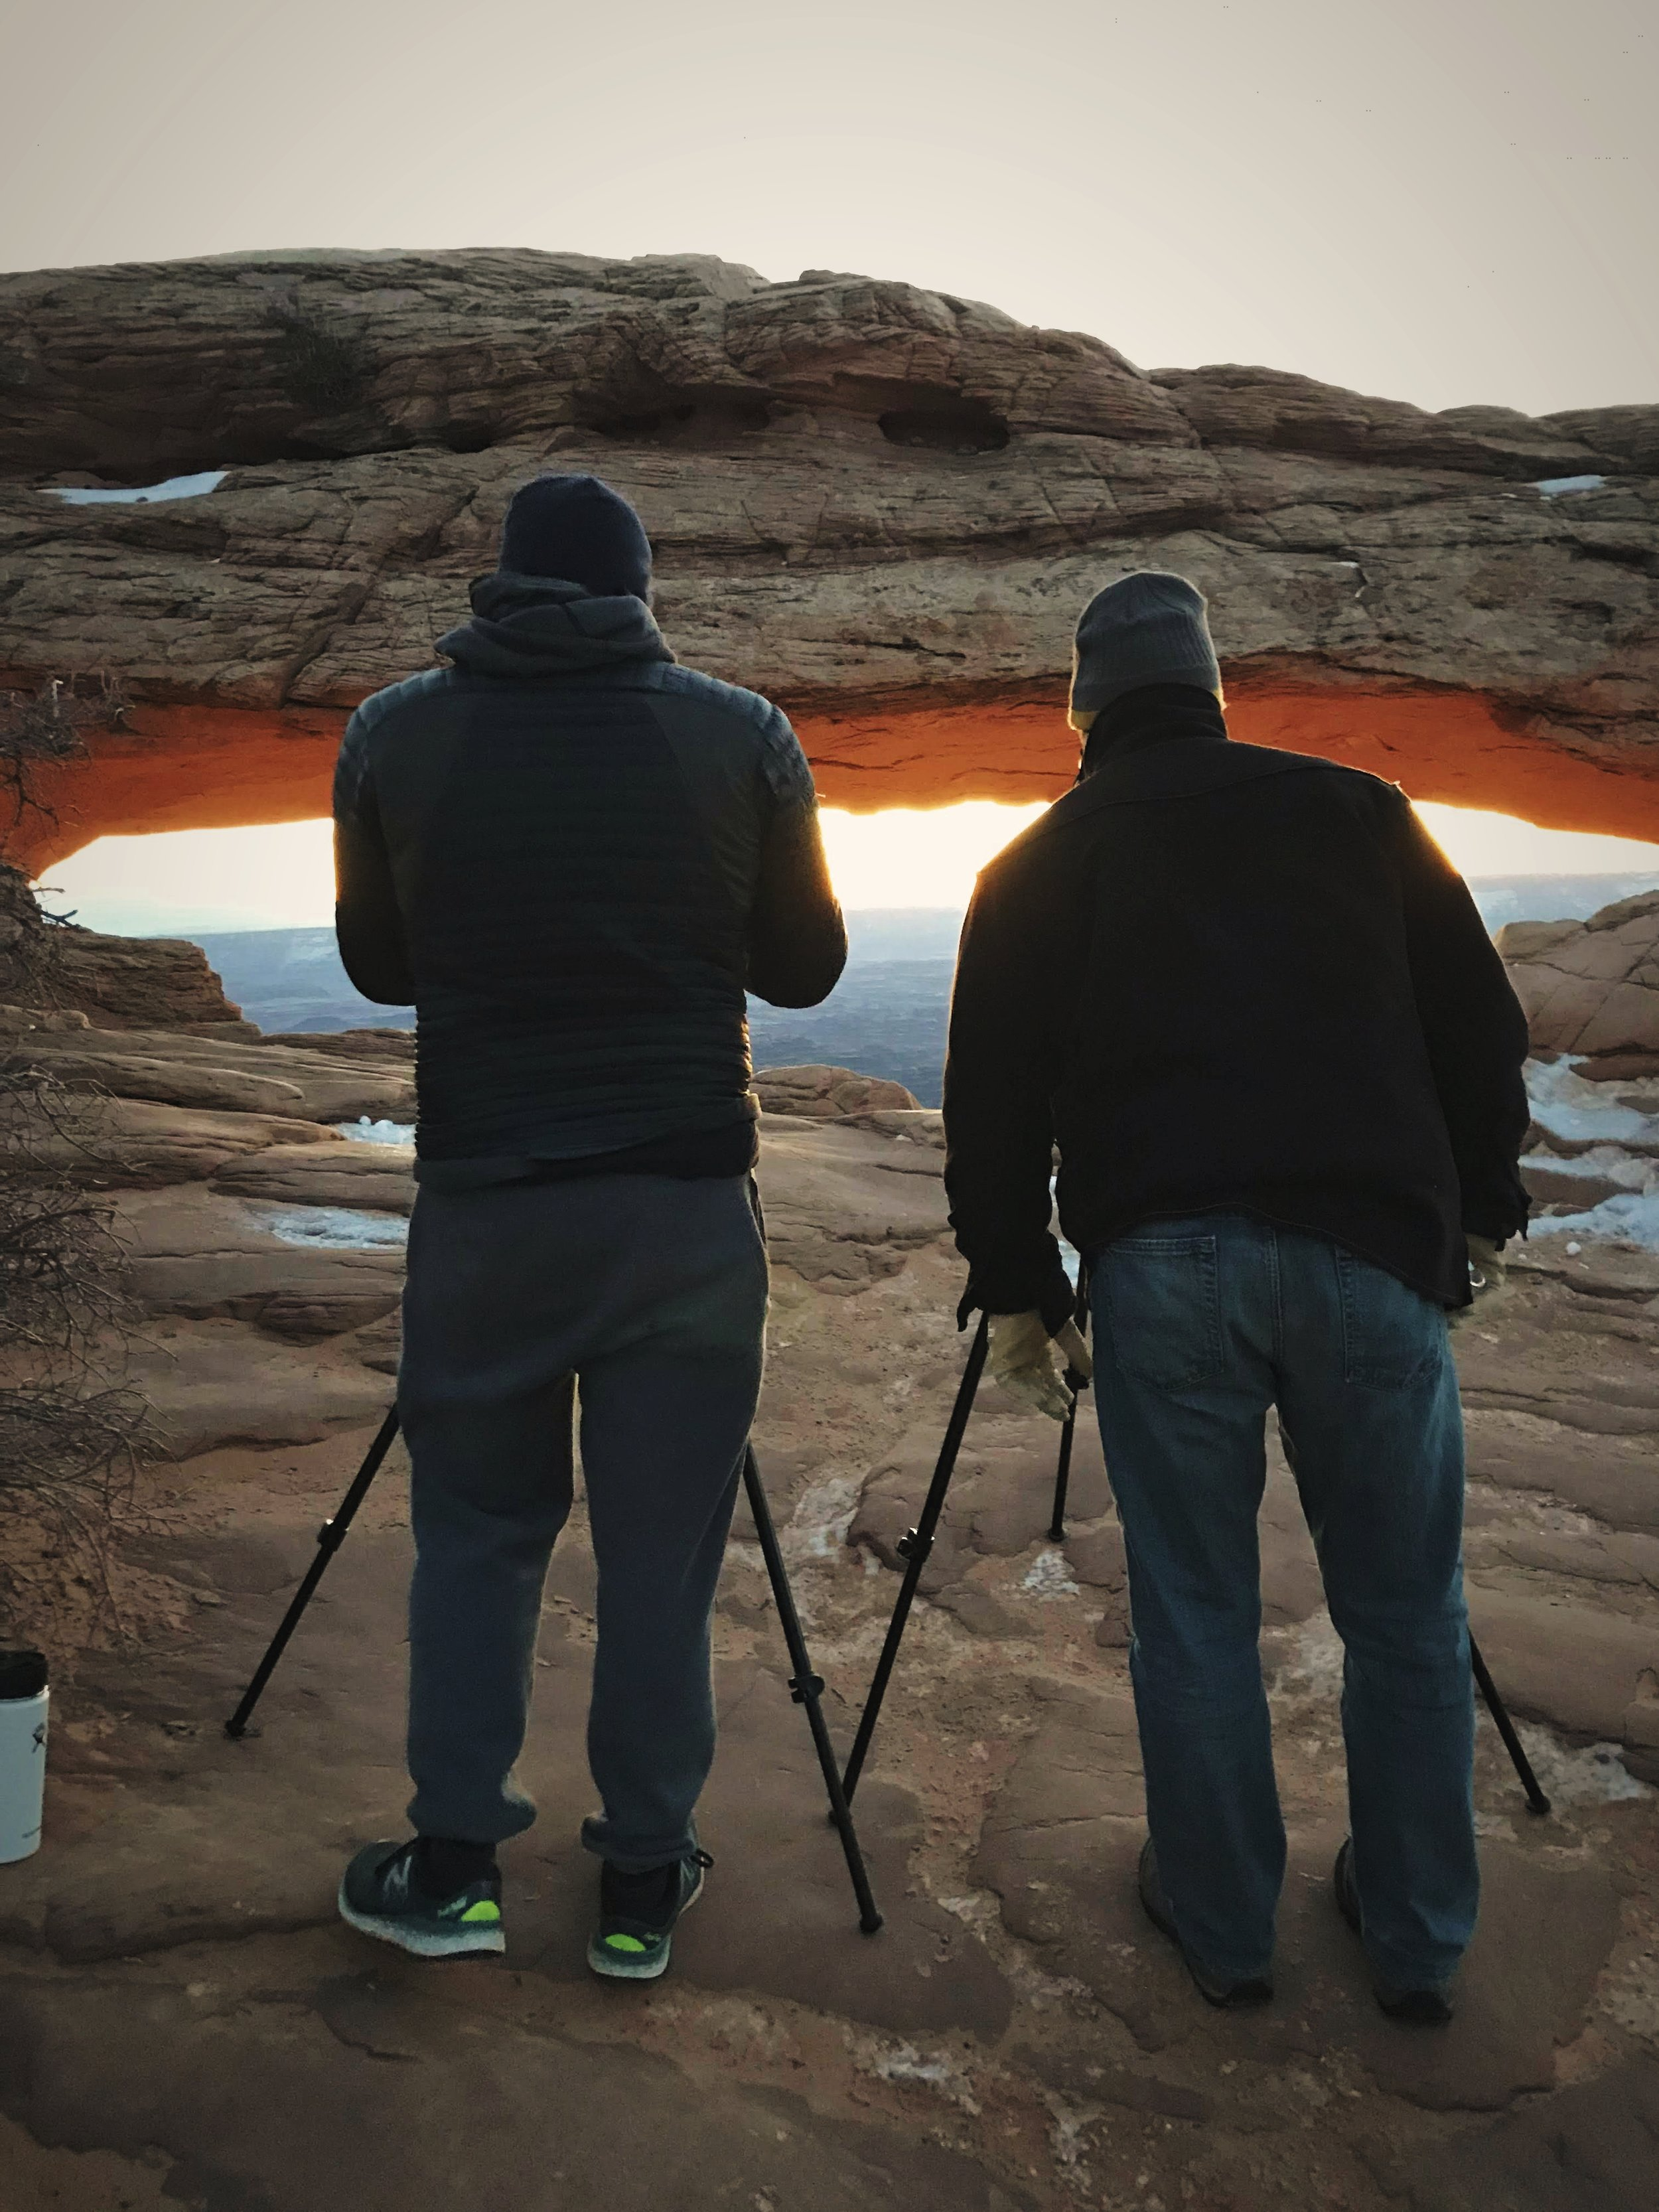 When we were at Mesa Arch there was only one other person with a tripod photographing the sunrise.